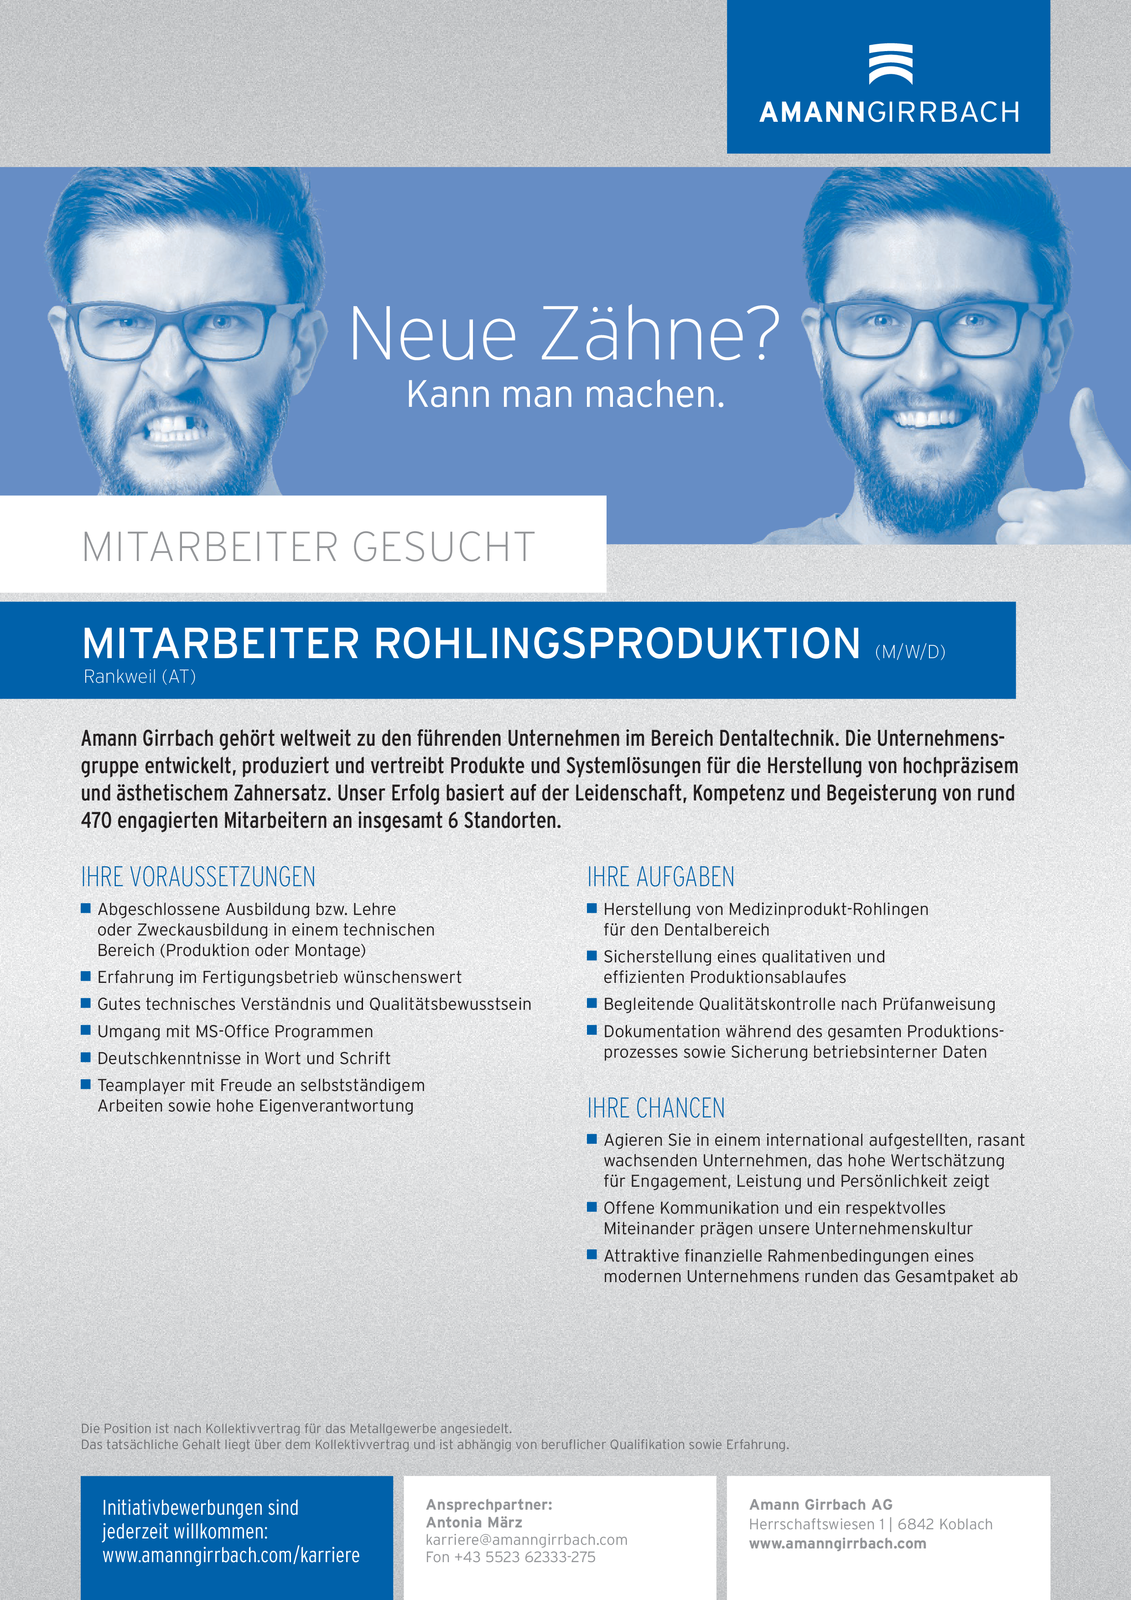 Mitarbeiter Rohlingsproduktion (m/w/d)